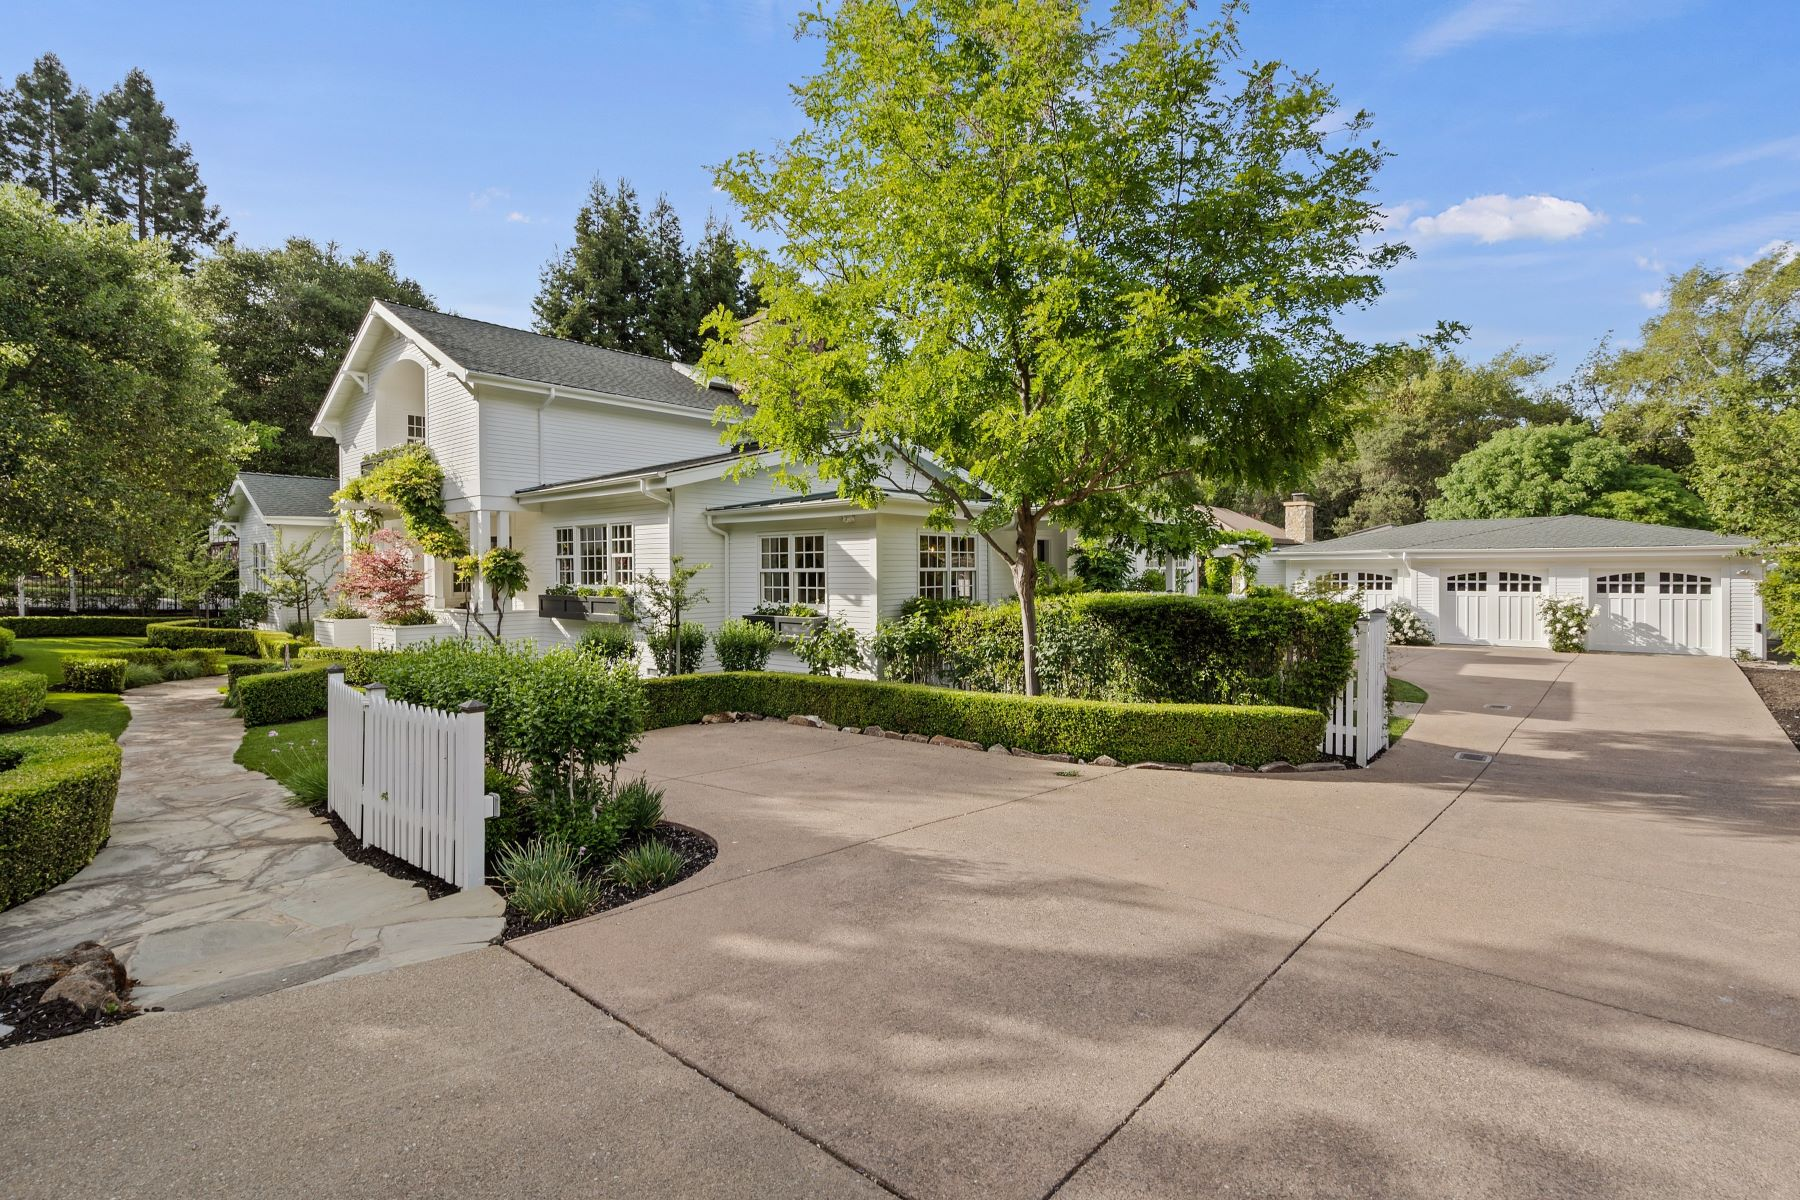 Single Family Homes for Active at Elegant Entertainer's Estate 3540 Springhill Road Lafayette, California 94549 United States